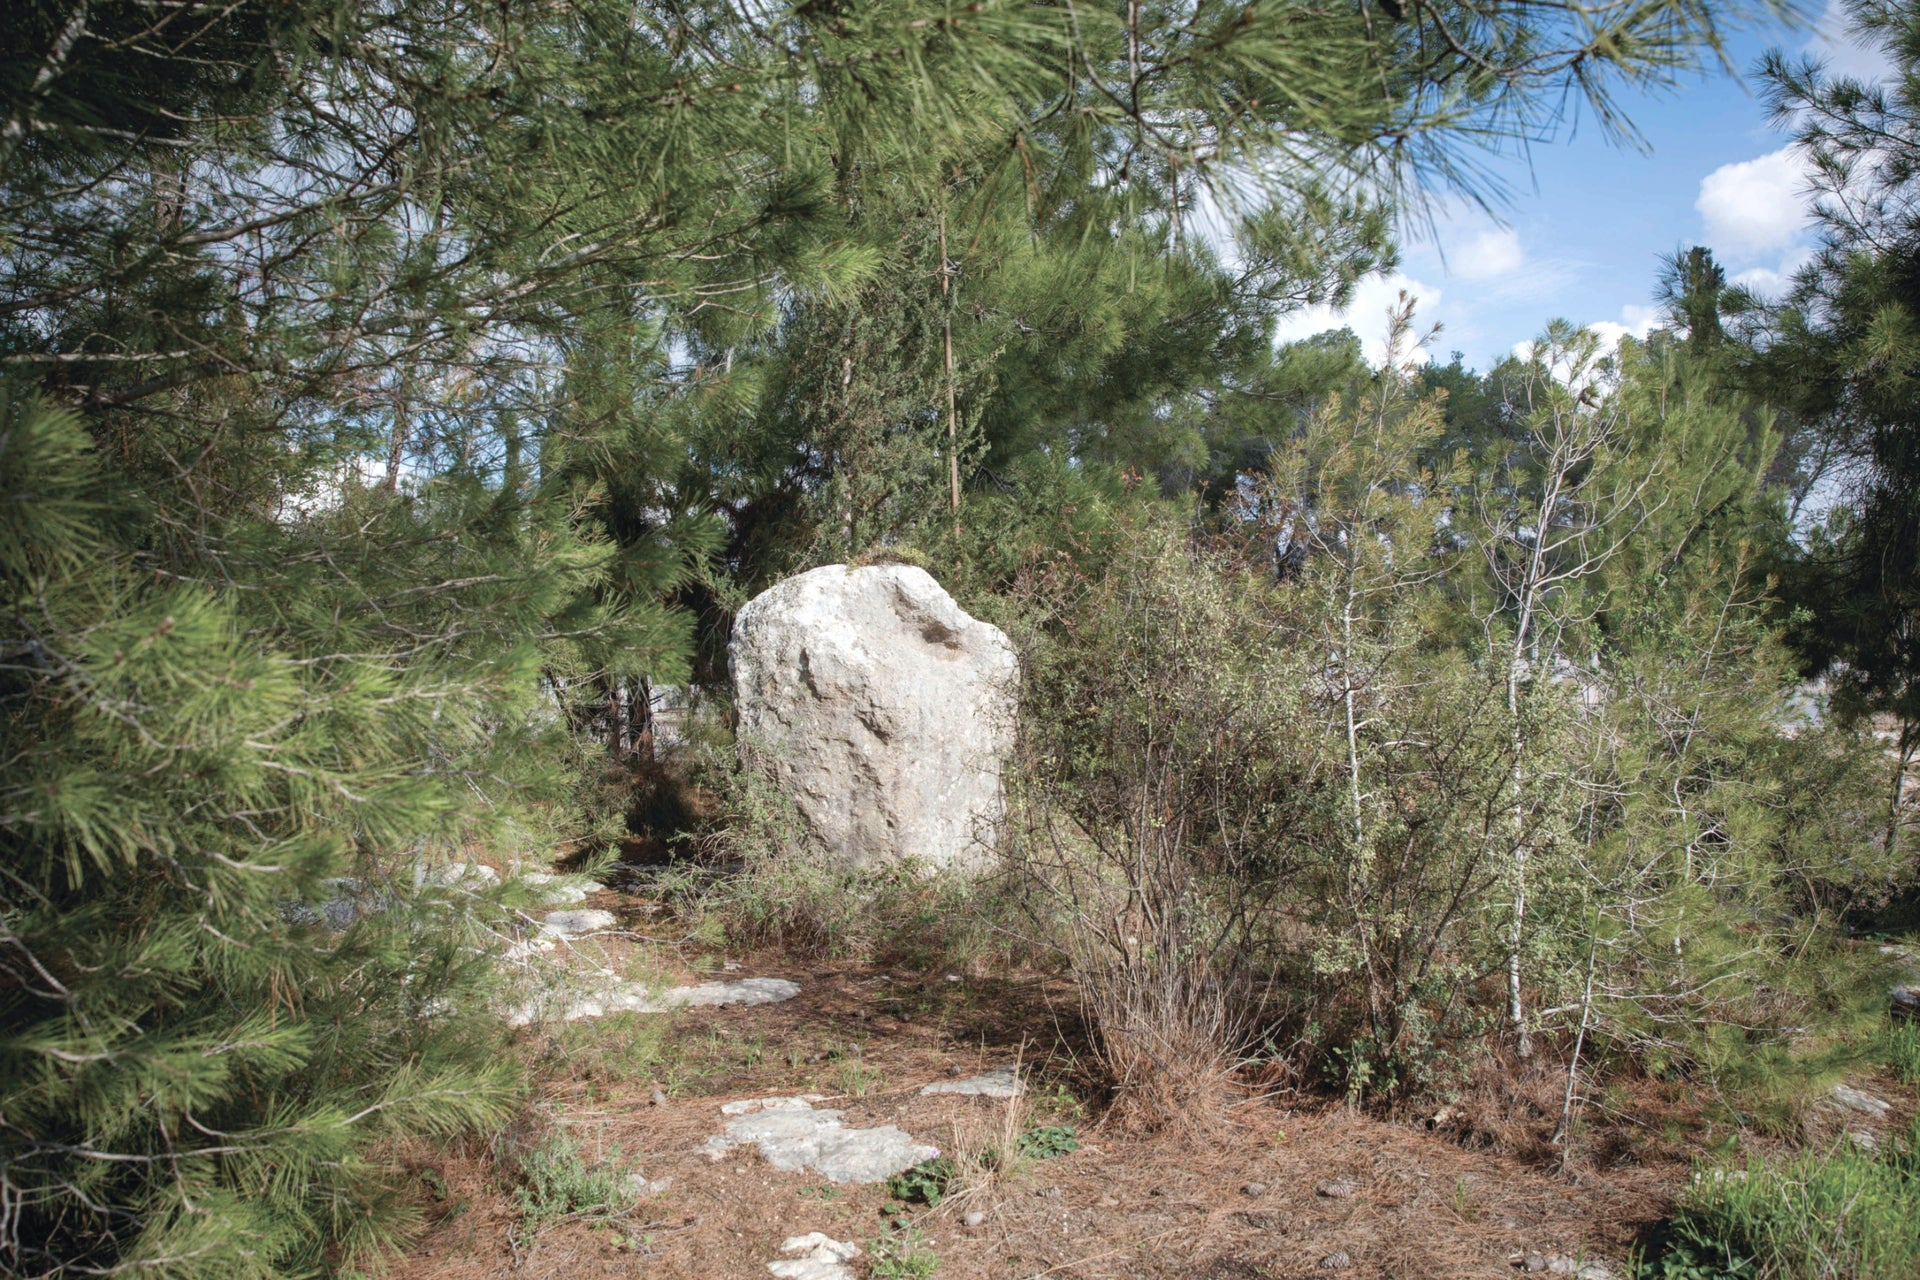 The Stone of Destruction, situated on a hill in the Eretz Hachaim Cemetery, near Moshav Eshtaol.